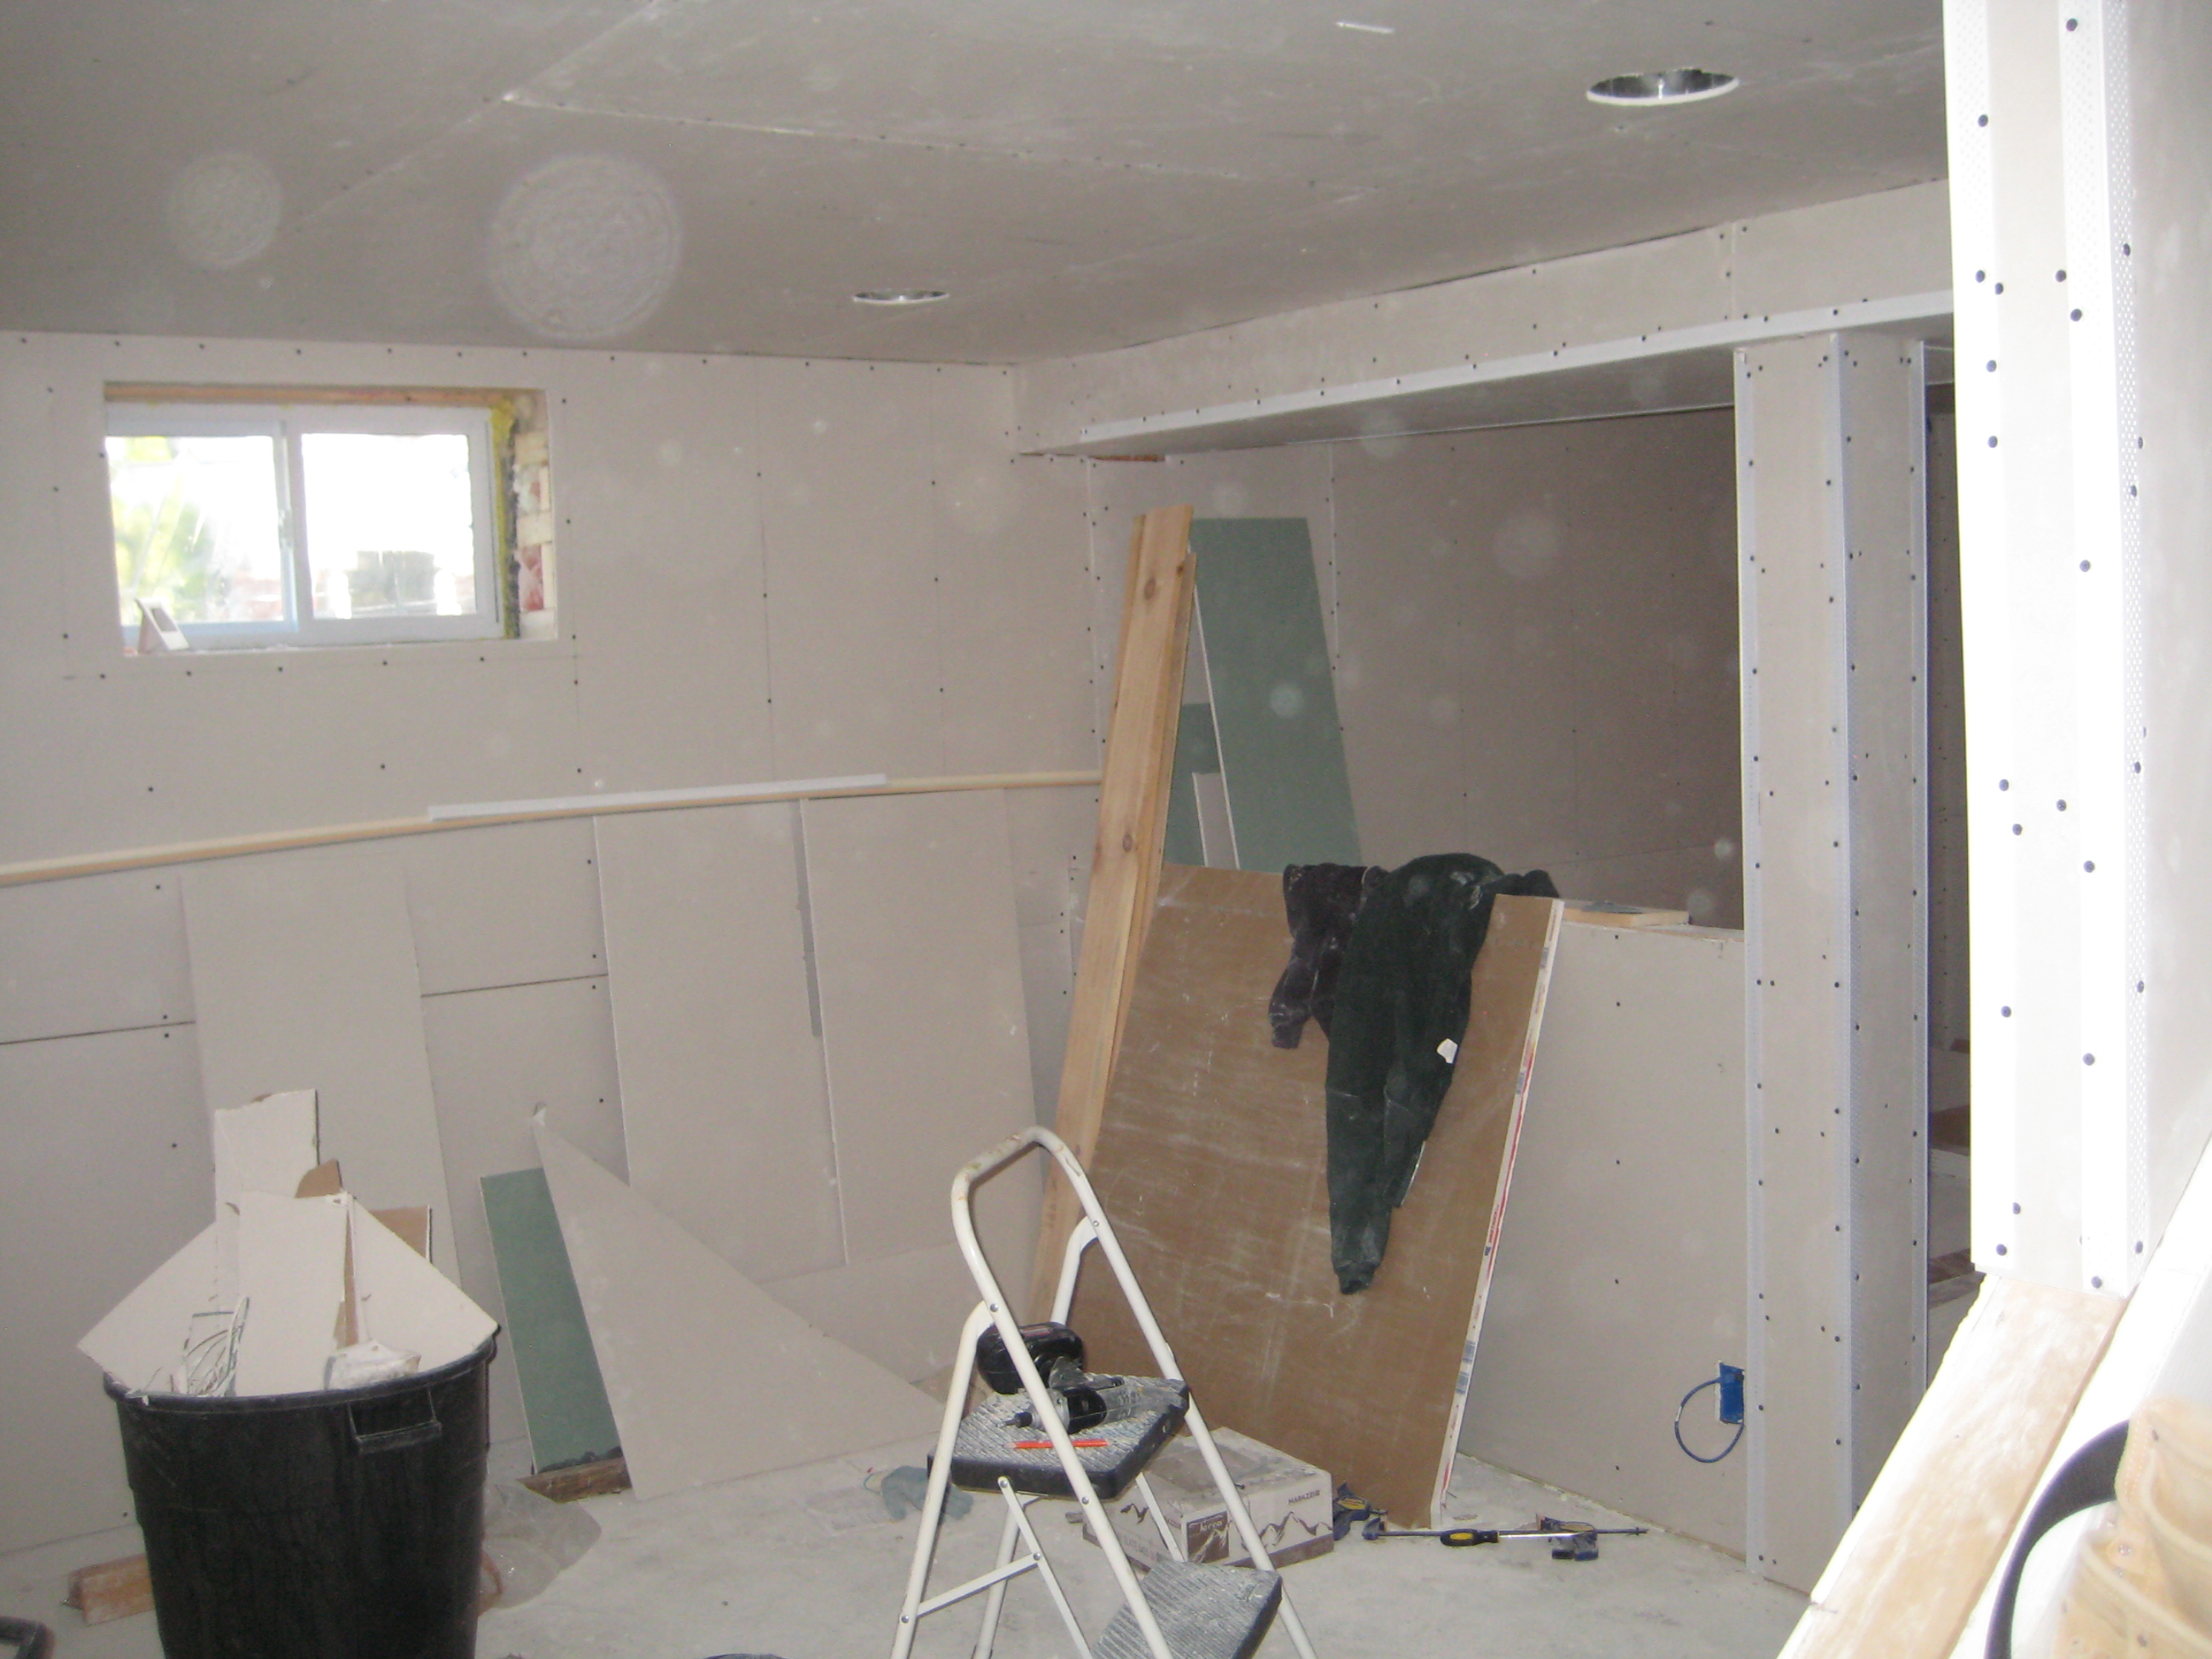 4 inch crown molding - Posted Image